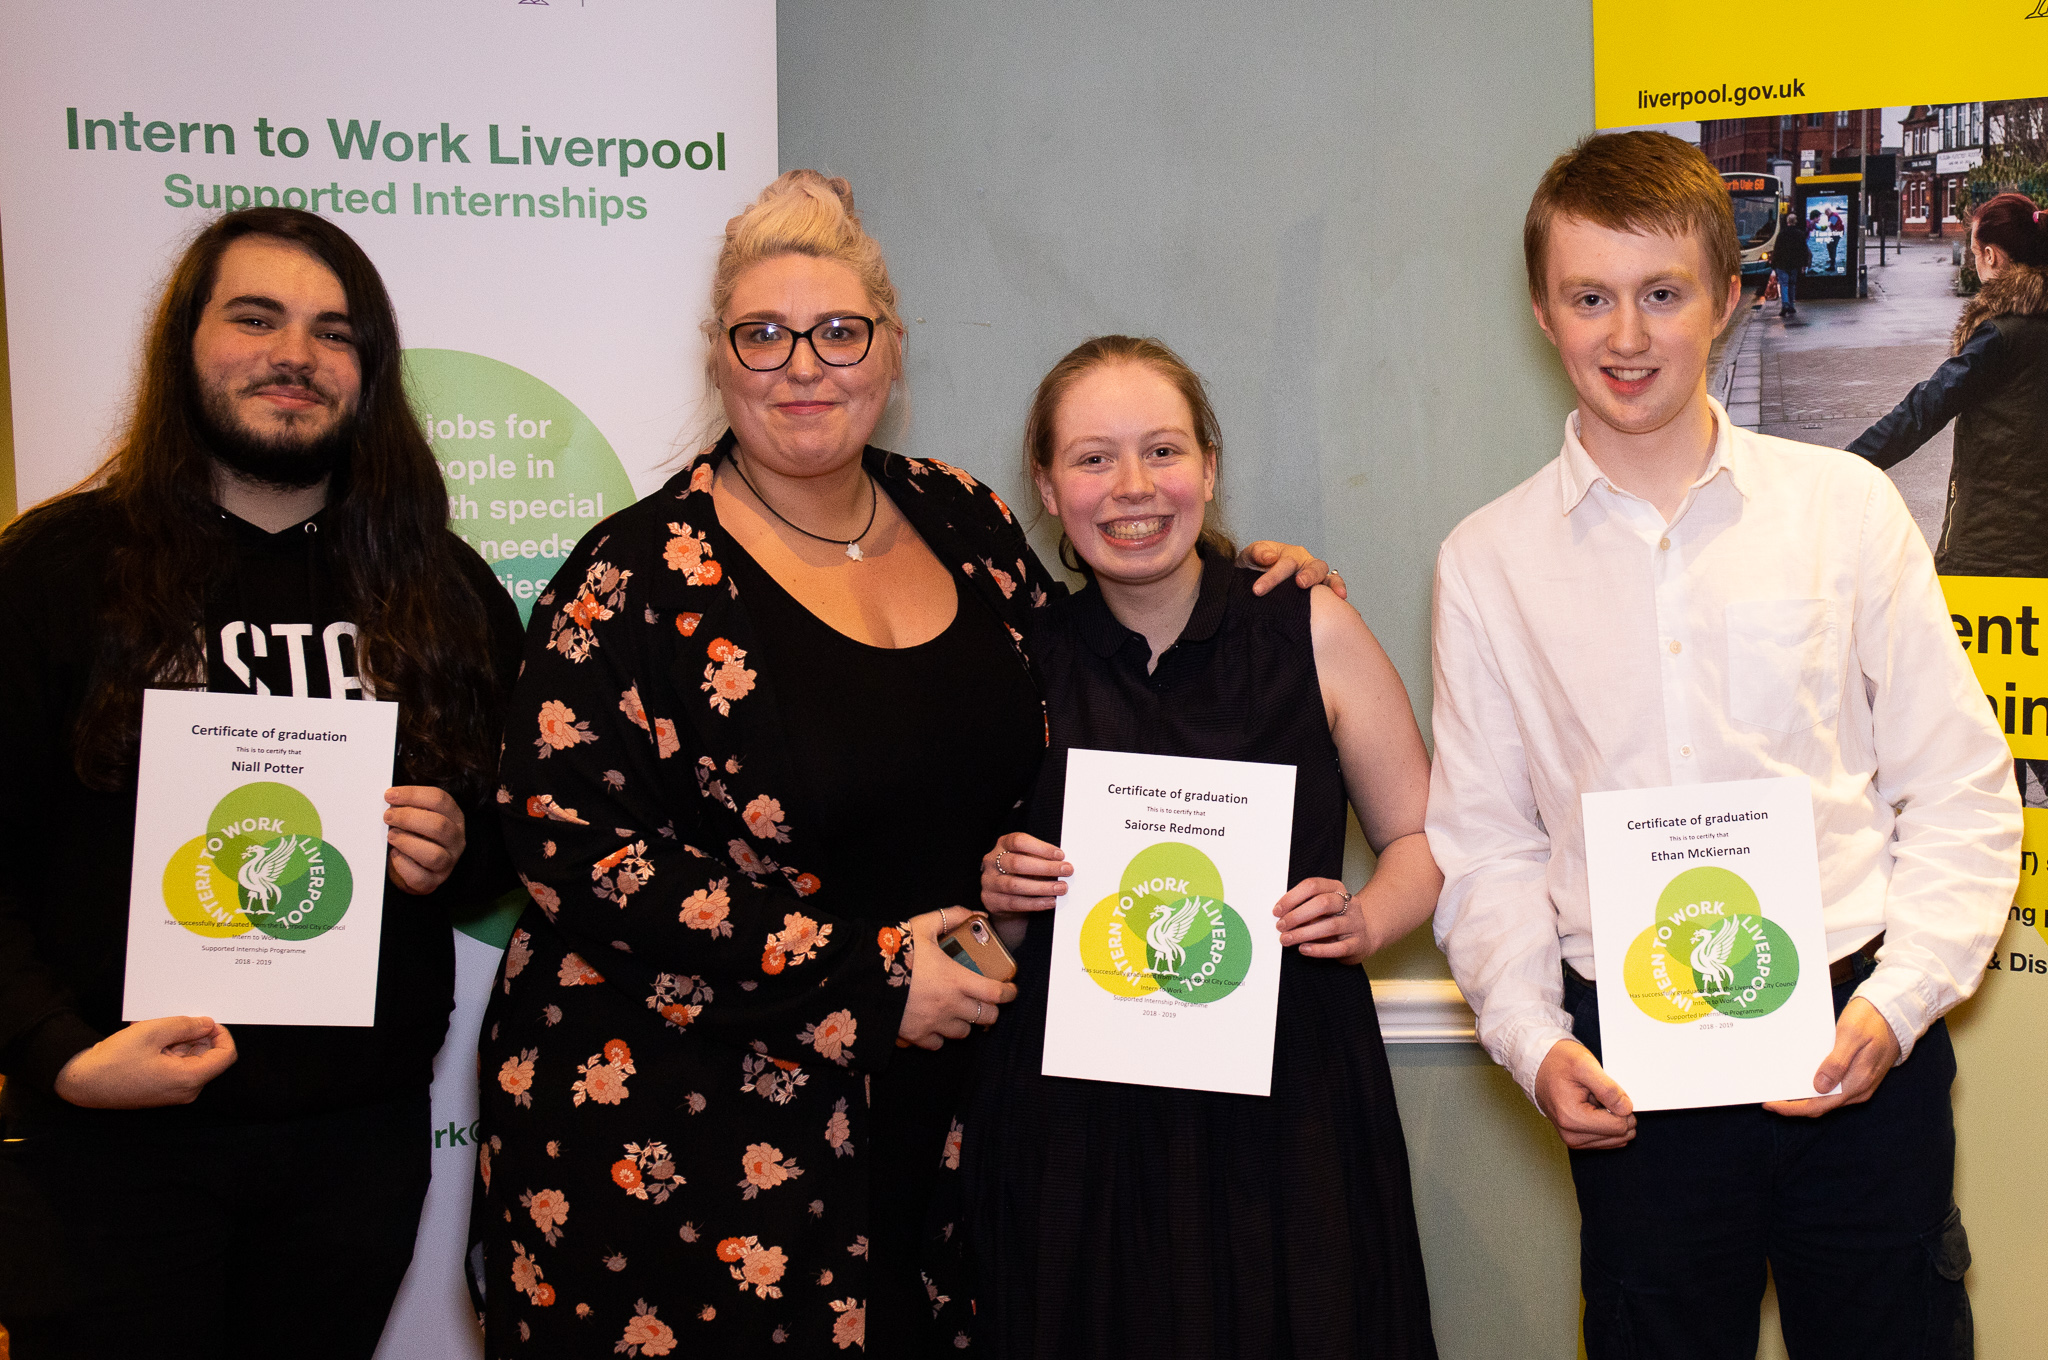 Niall, Saoirse and Ethan, supported interns from Abbot's Lea School based at Amey PLC with their graduation certificates and their job coach Claire Caddick.